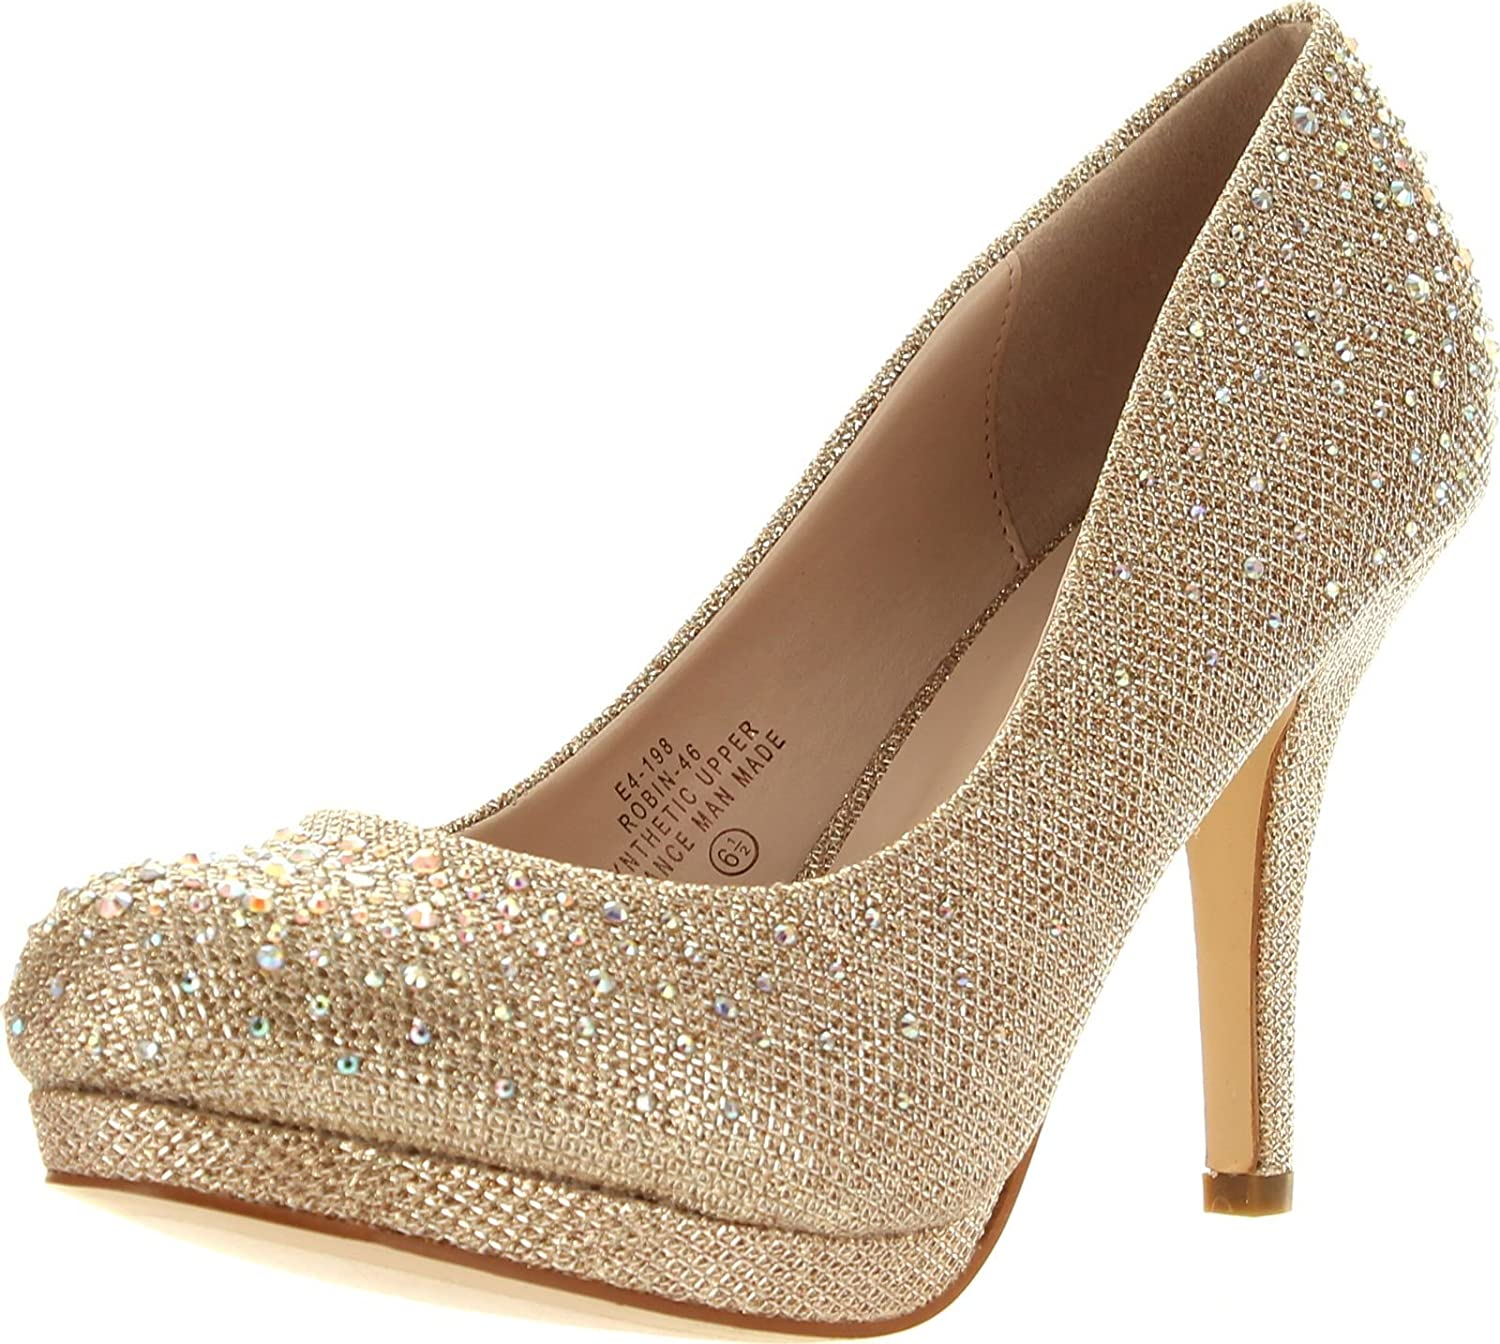 JJF shoes Blossom Womens Robin46 Rhinestone Sparkle Glitter Formal Evening Classic Low Heel Pumps,Nude,7